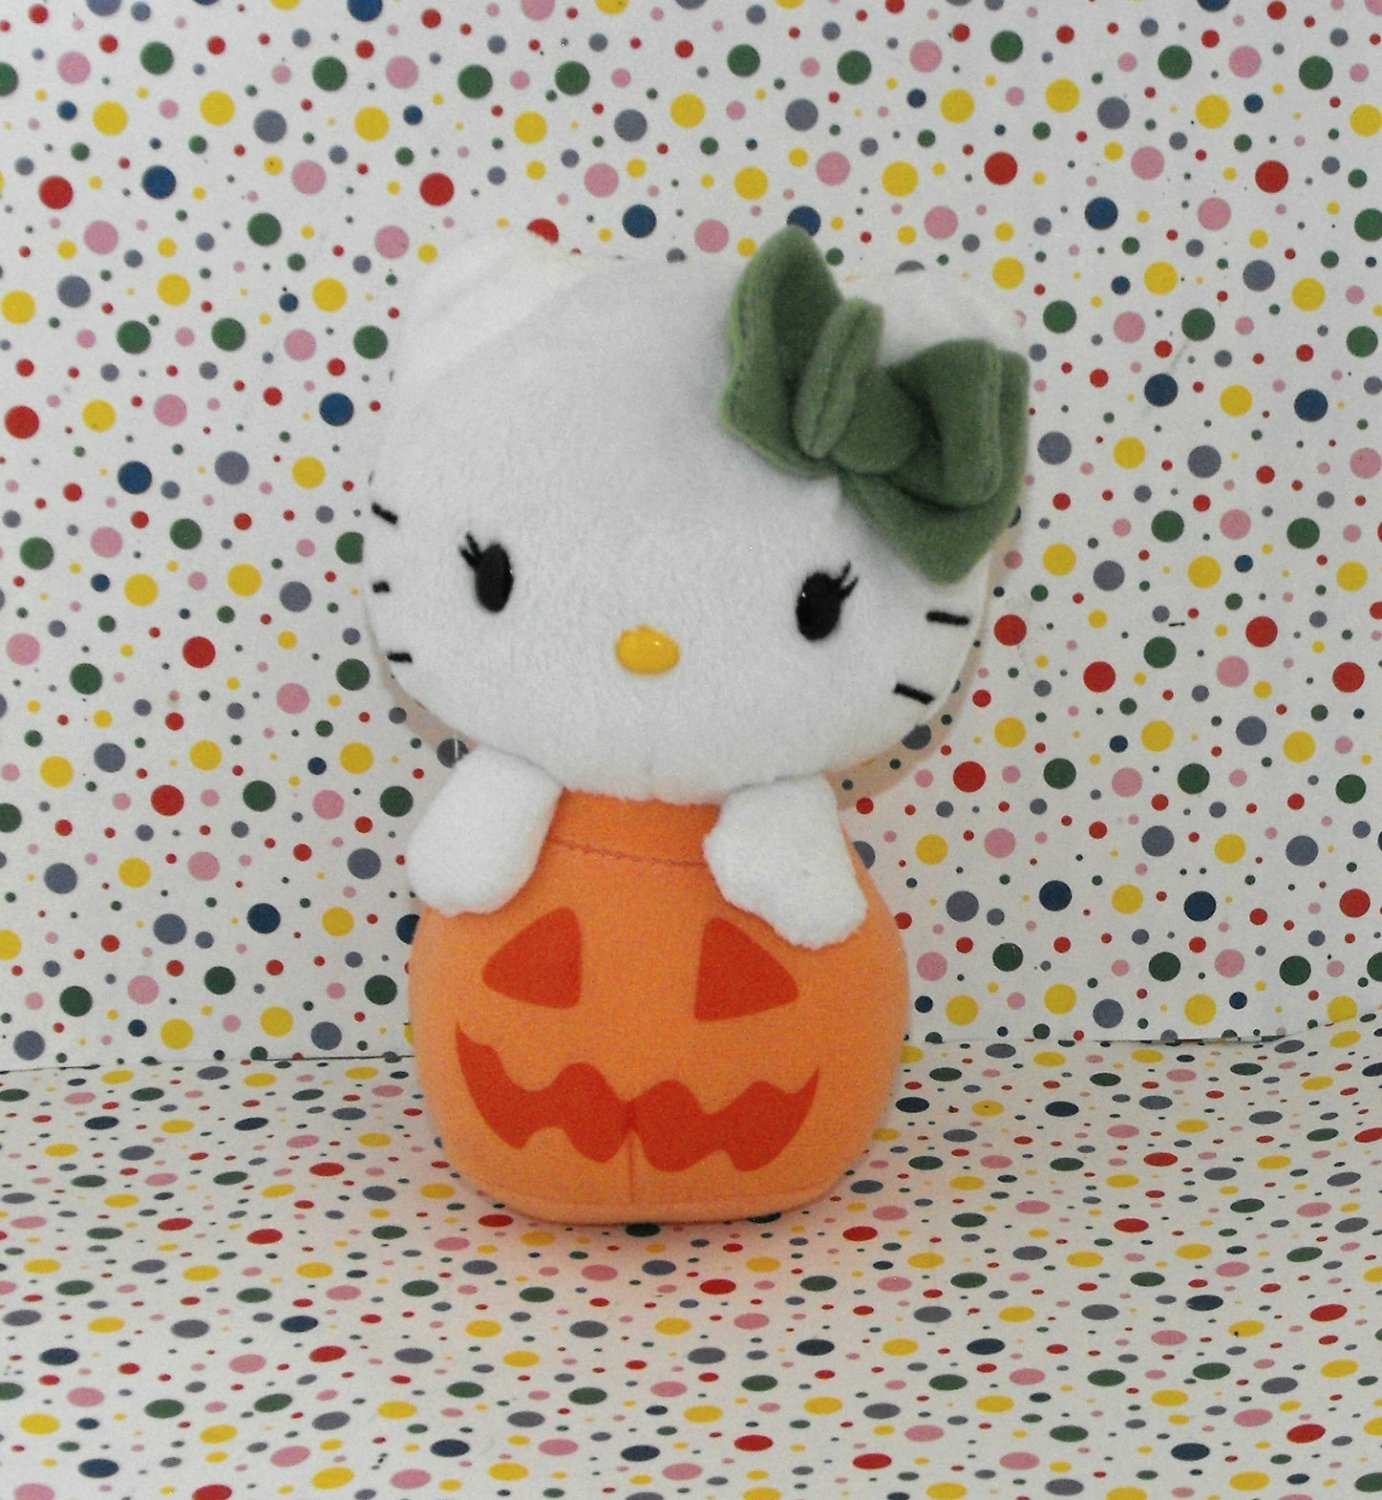 Hello Kitty Halloween Orange Pumpkin Jack O' Lantern Beanie Plush